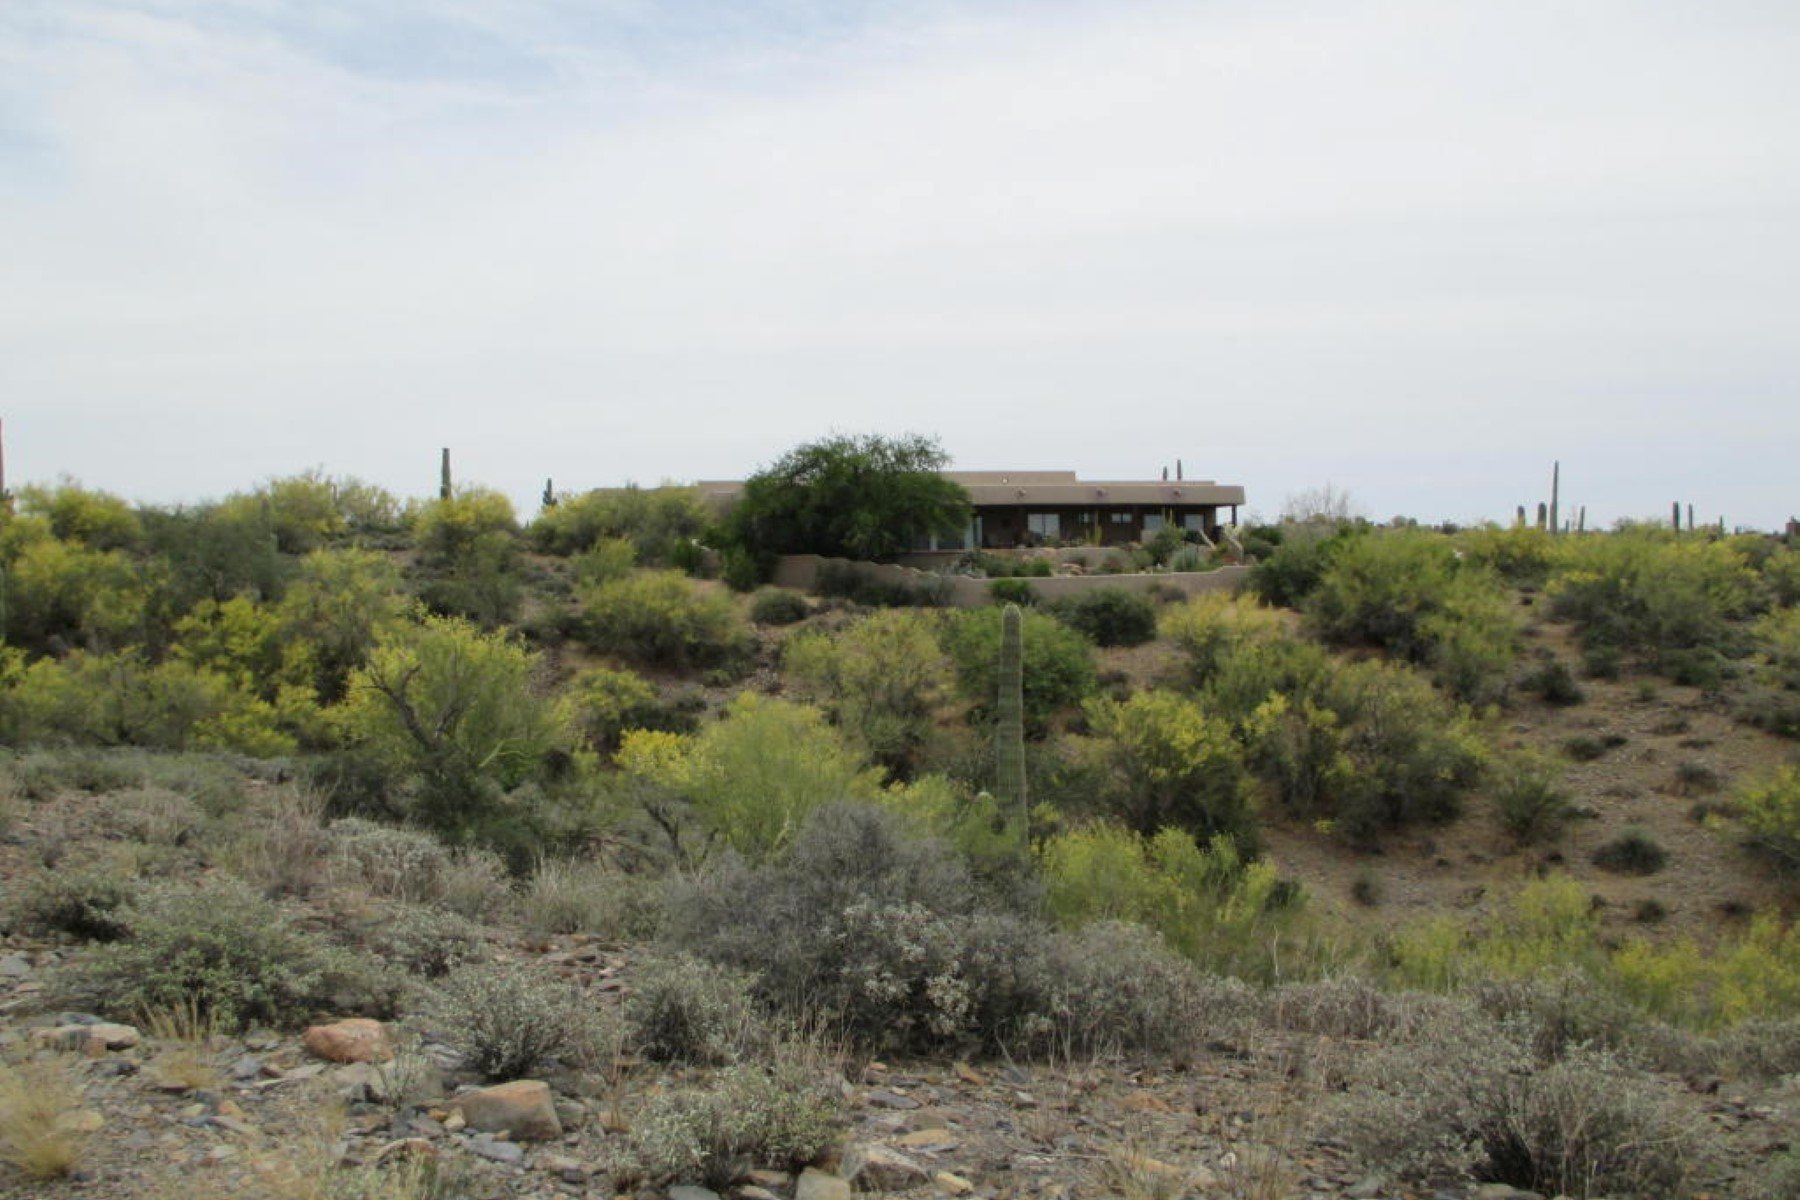 Moradia para Venda às Exquisite custom home on a beautiful 4.3 acre lot with magnificent views. 7455 E GRAPEVINE RD E Cave Creek, Arizona 85331 Estados Unidos